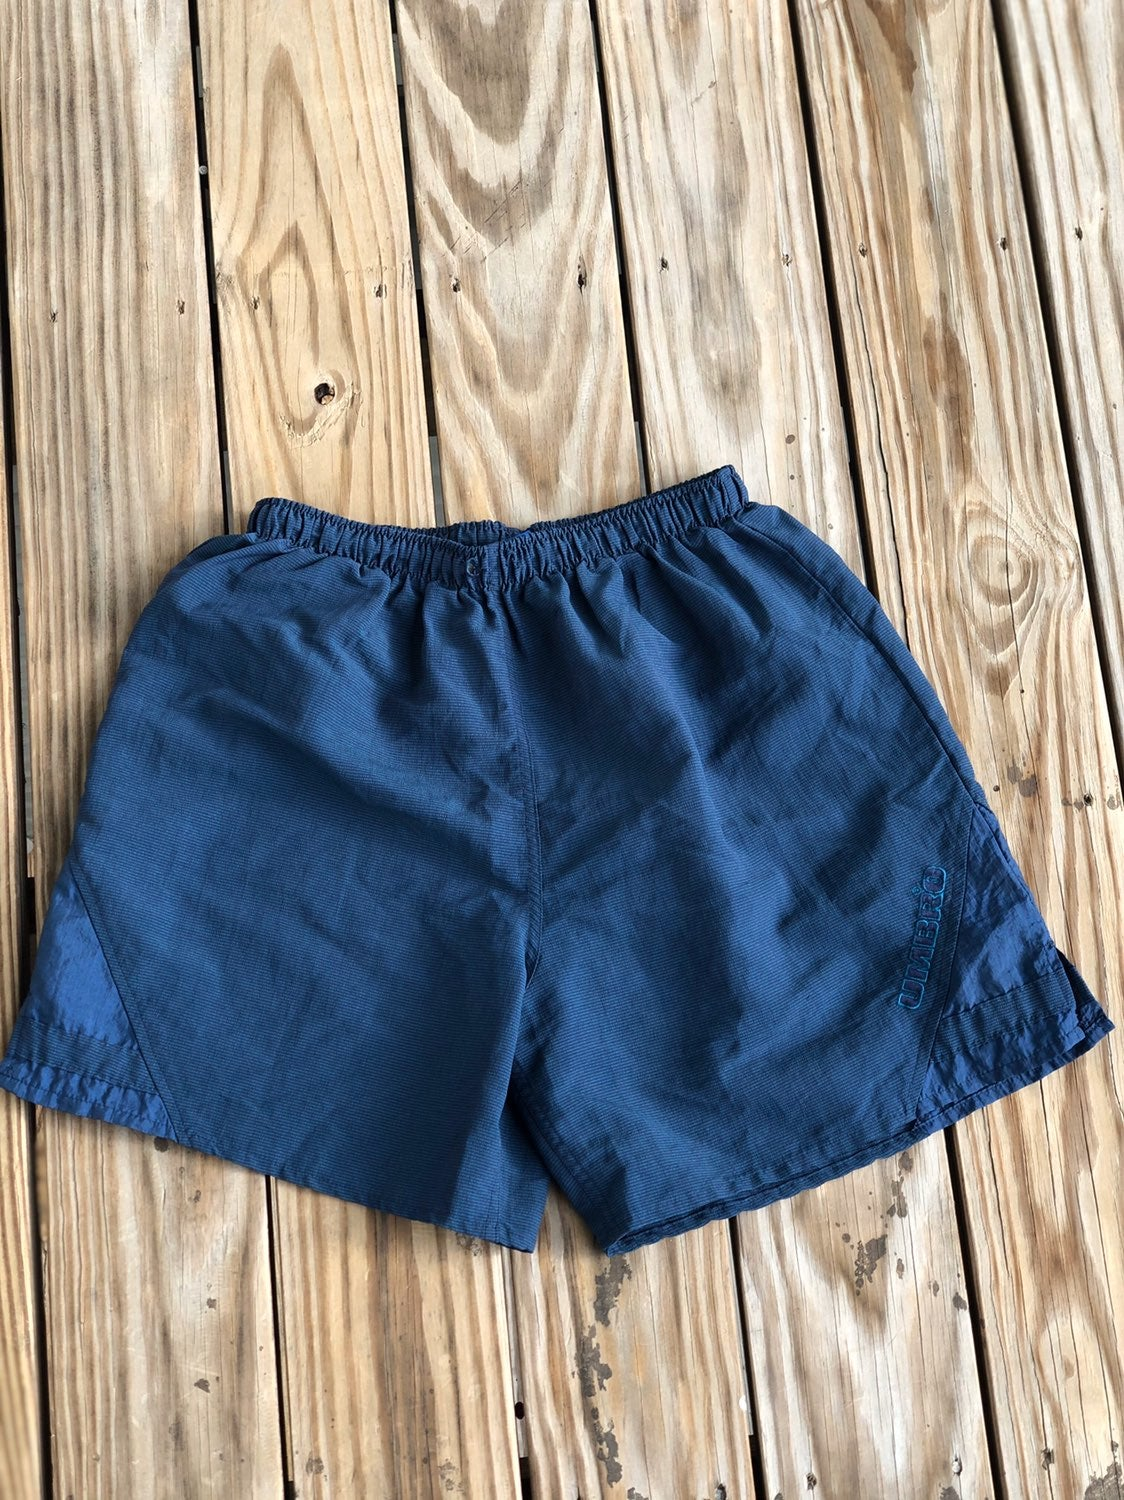 Vintage umbro made in the USA swim trunk